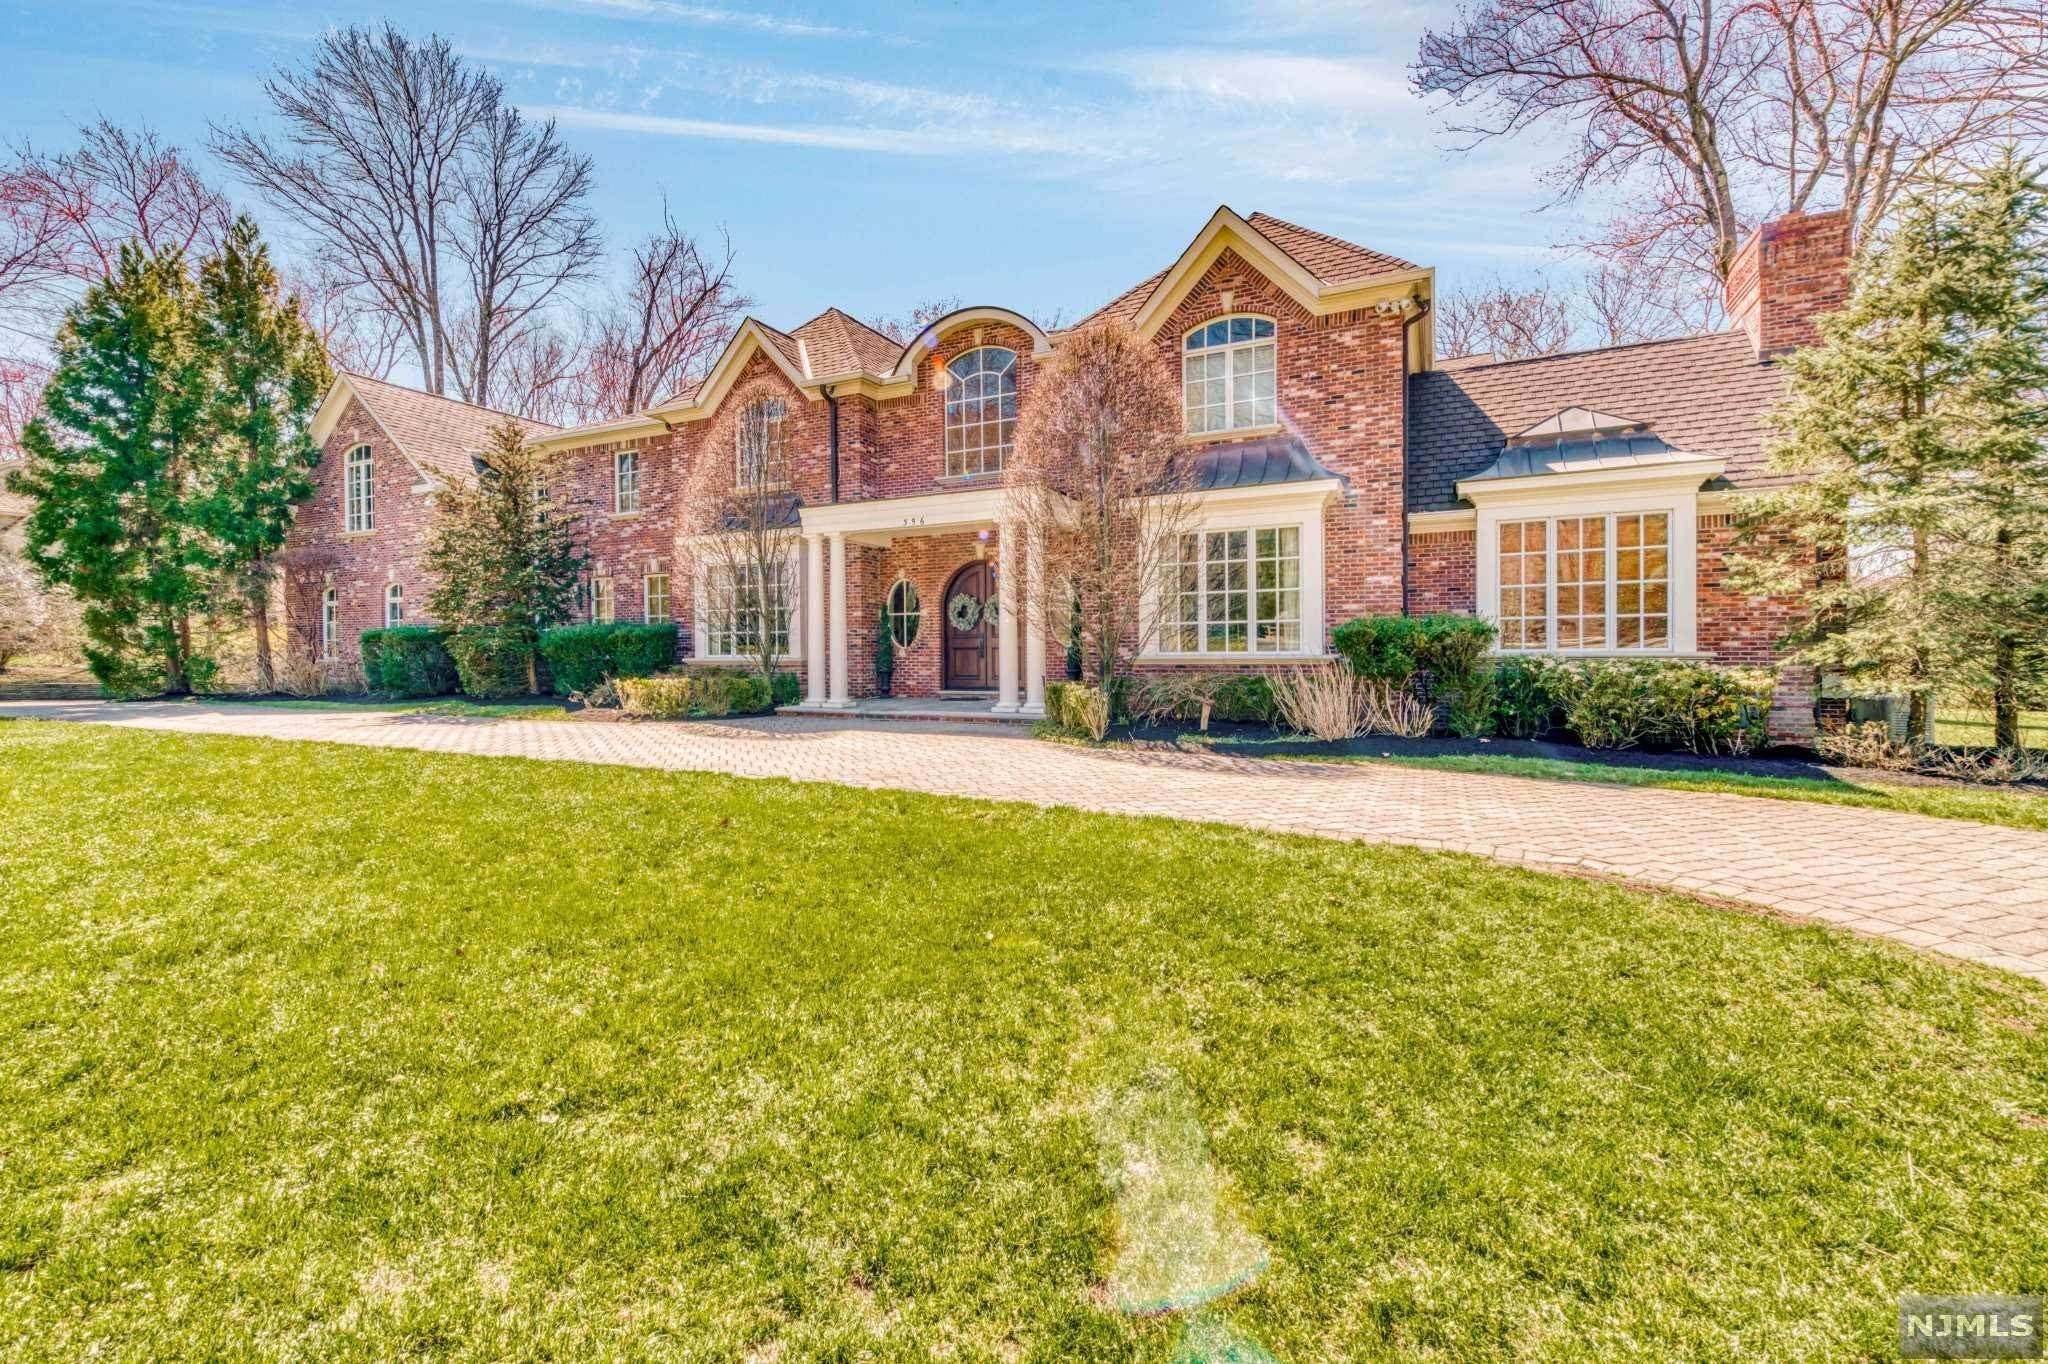 Single Family Home for Sale at 356 Indian Trail Drive Franklin Lakes, New Jersey, 07417 United States